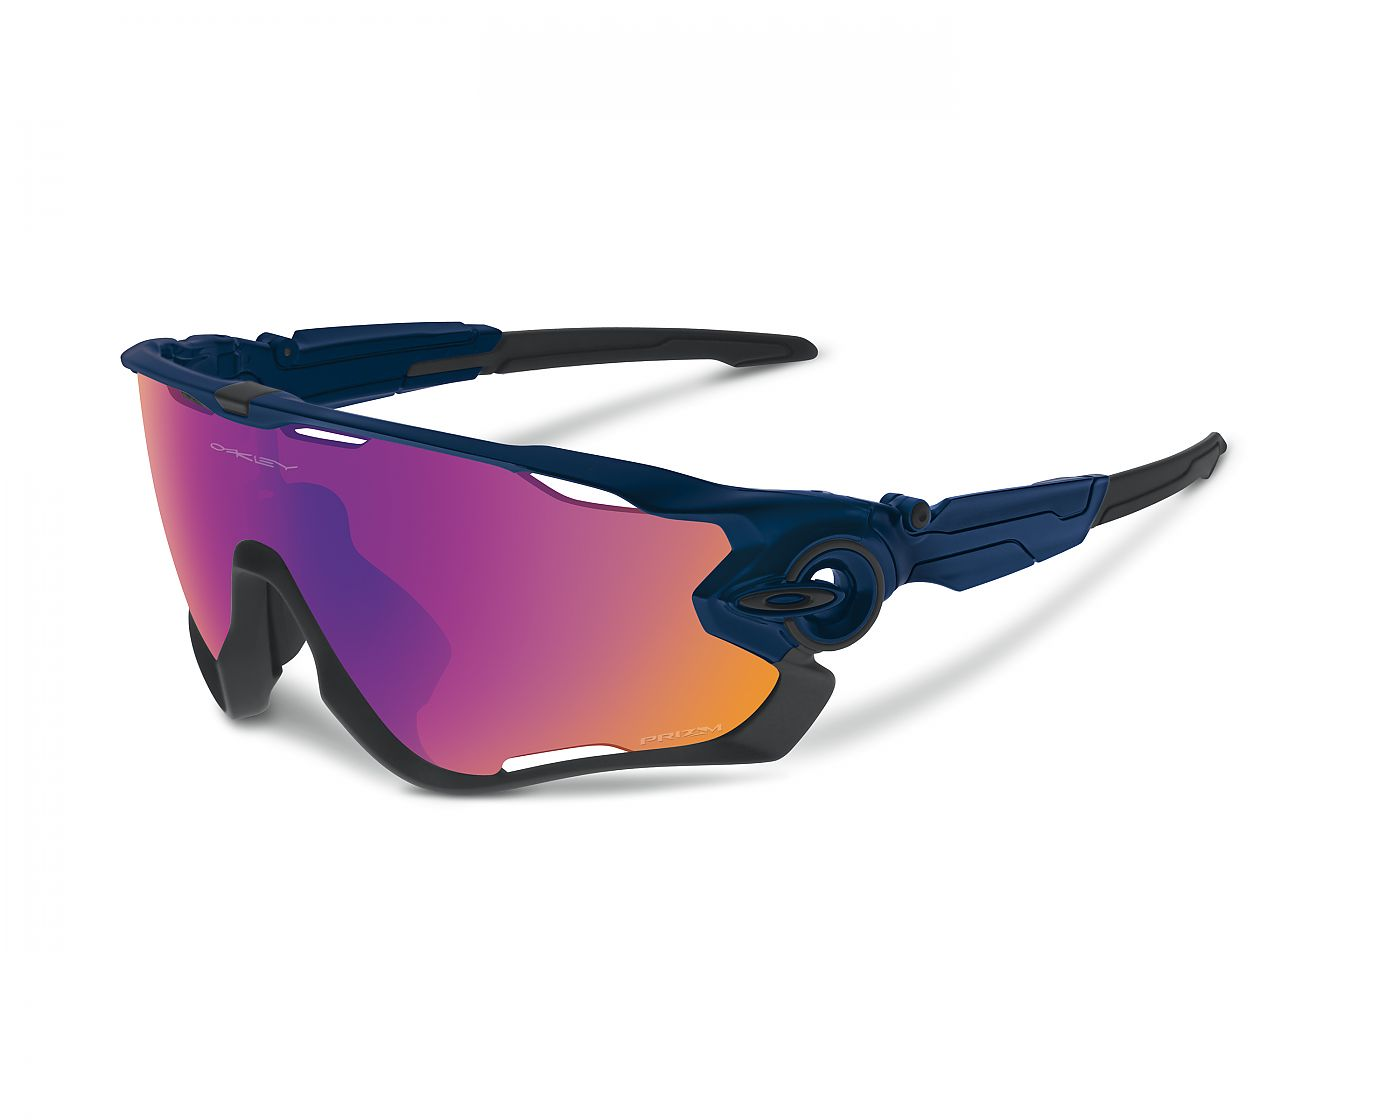 386b315c66a New Oakley Jawbreaker inspired by Mark Cavendish. Previous  Next